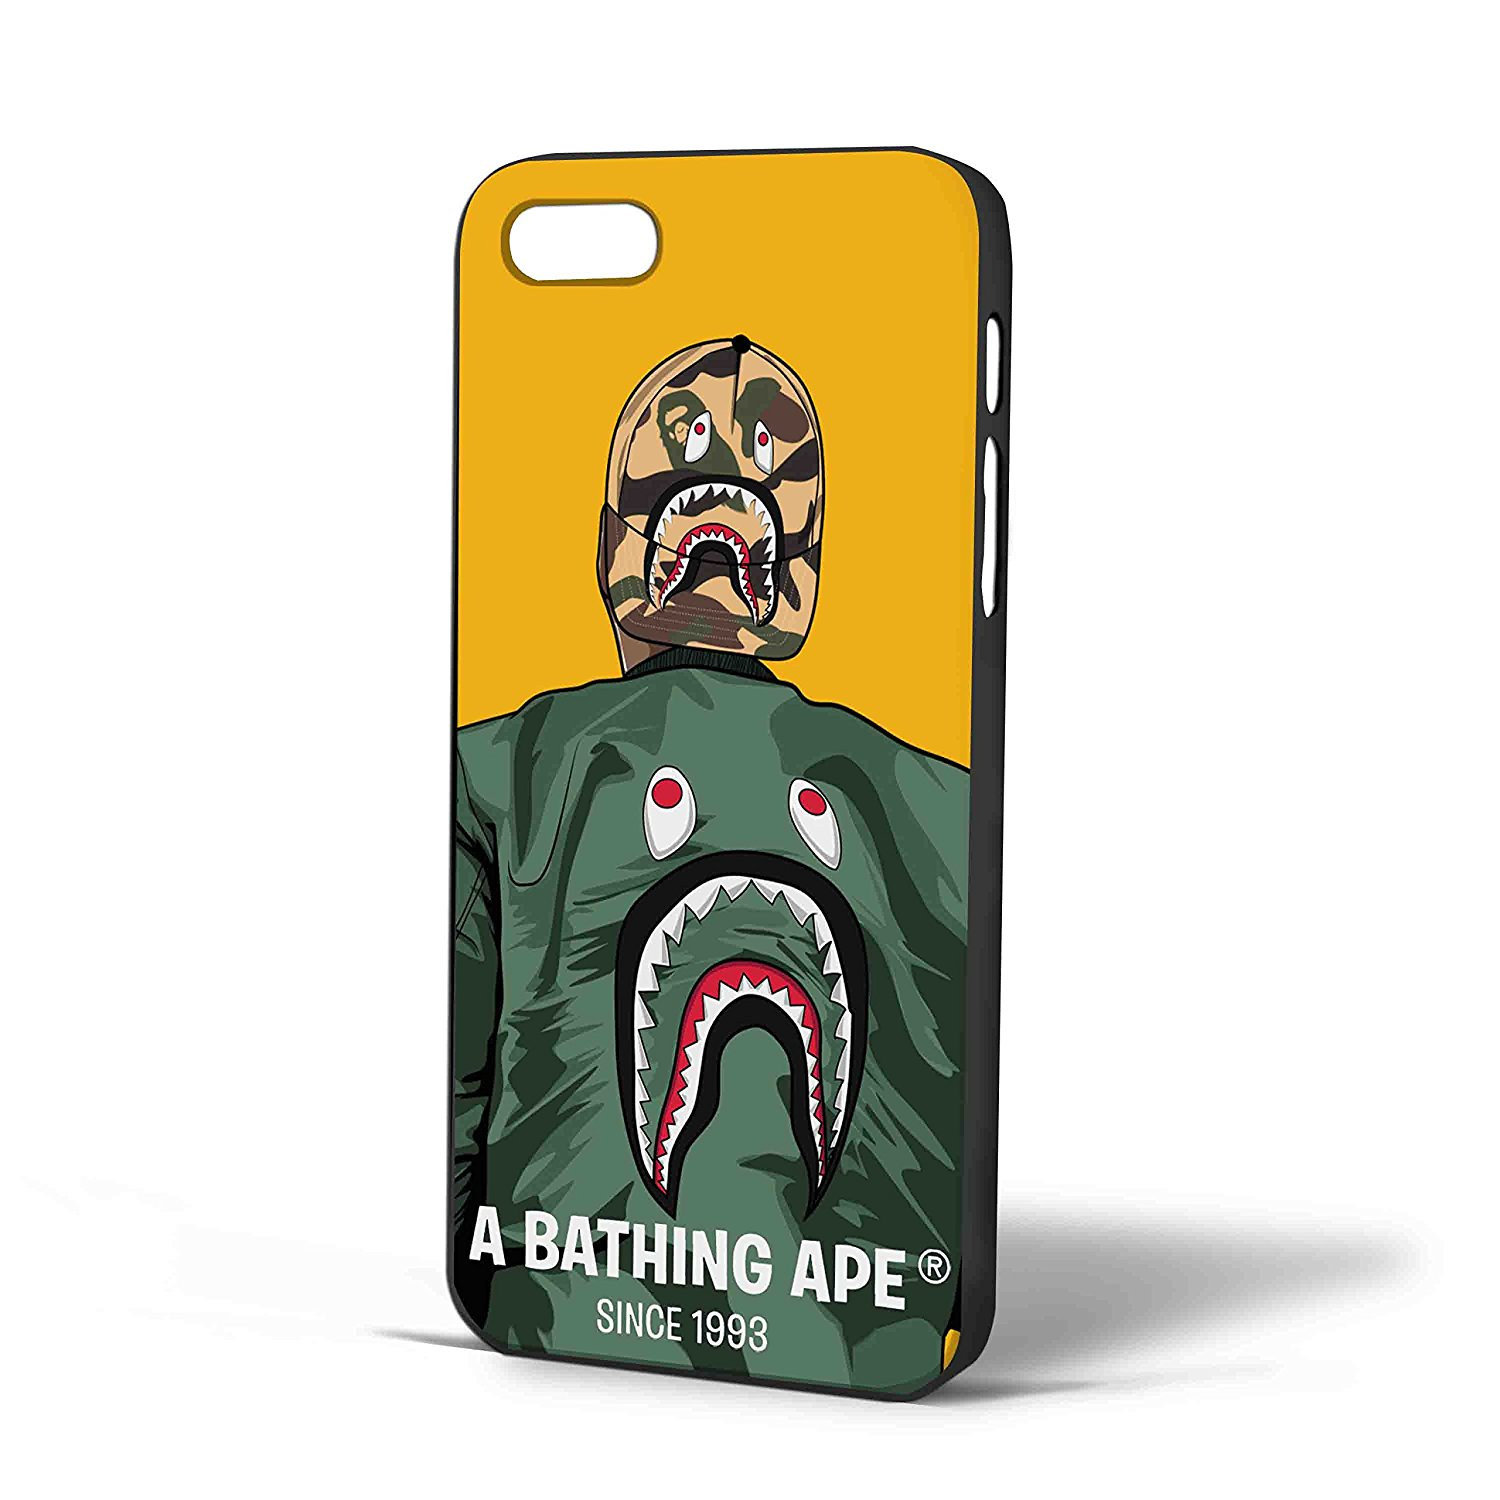 Ganma A Bathing Ape Jacket Case For iPhone Case (Case For iPhone 6s White)